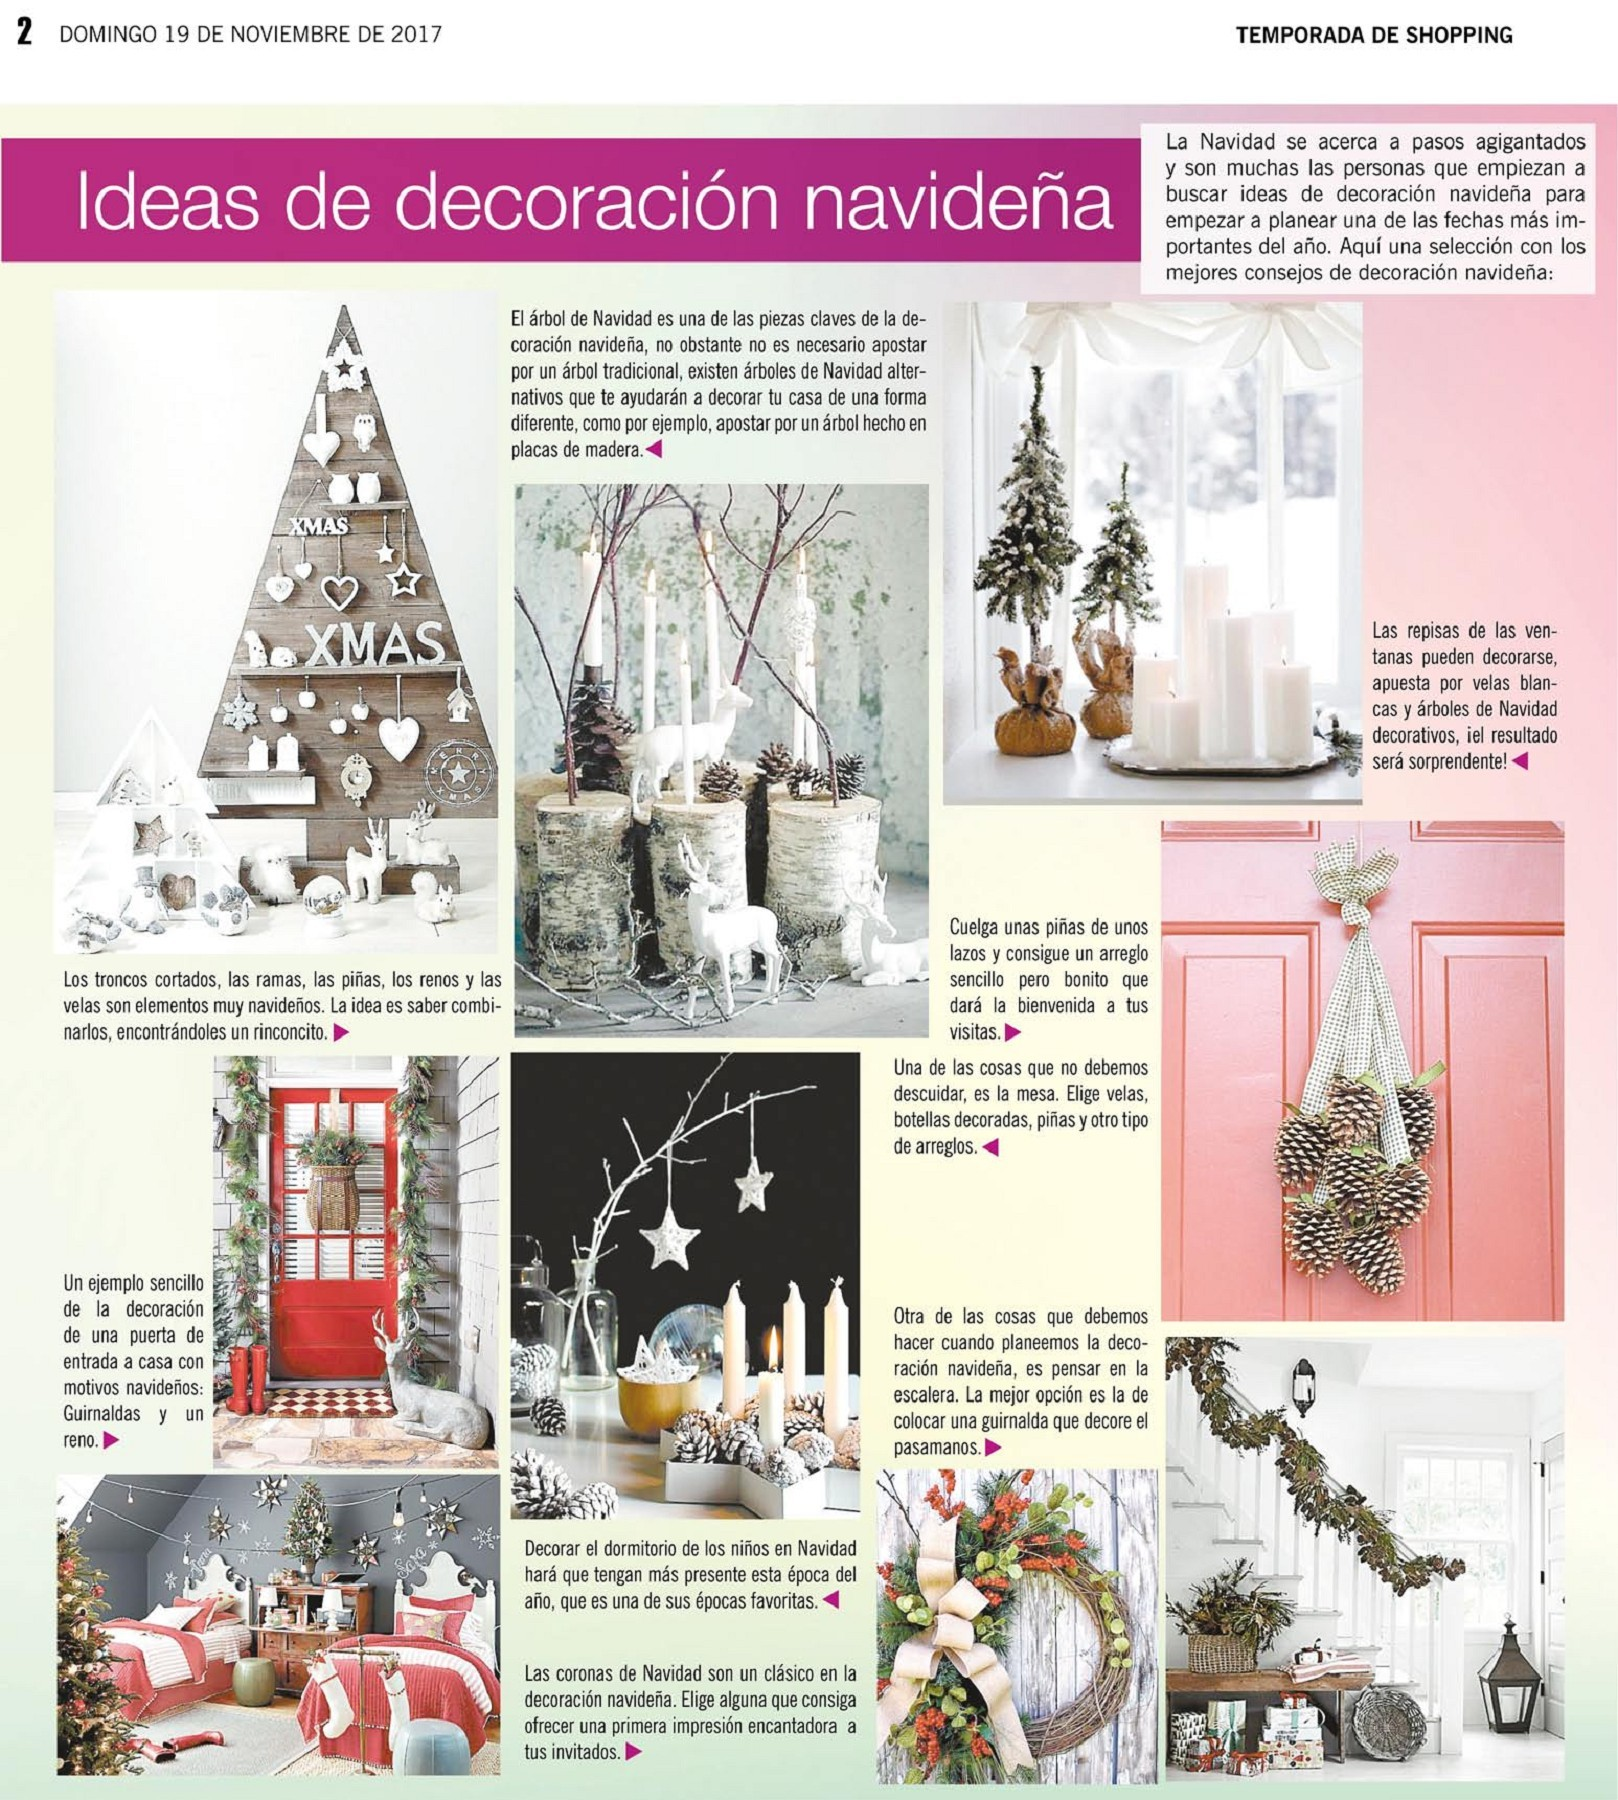 Casa Decoracion Shop Online Shopping 2017 Pages 1 16 Text Version Fliphtml5